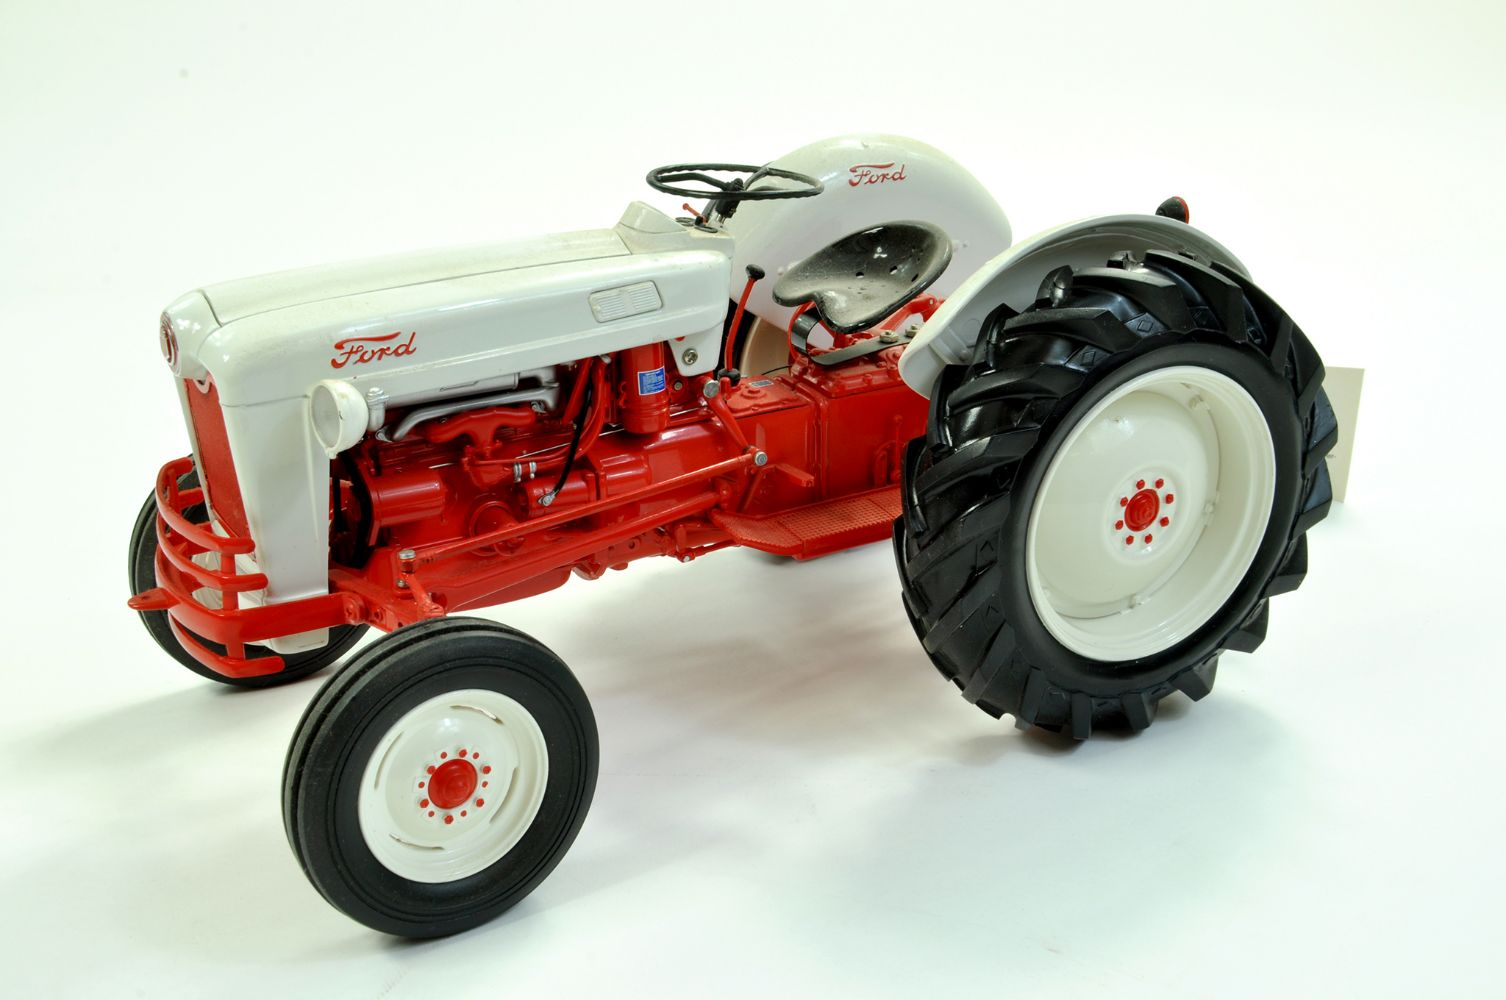 September Live Online Specialist Toy & Model Auction - Two Day Event